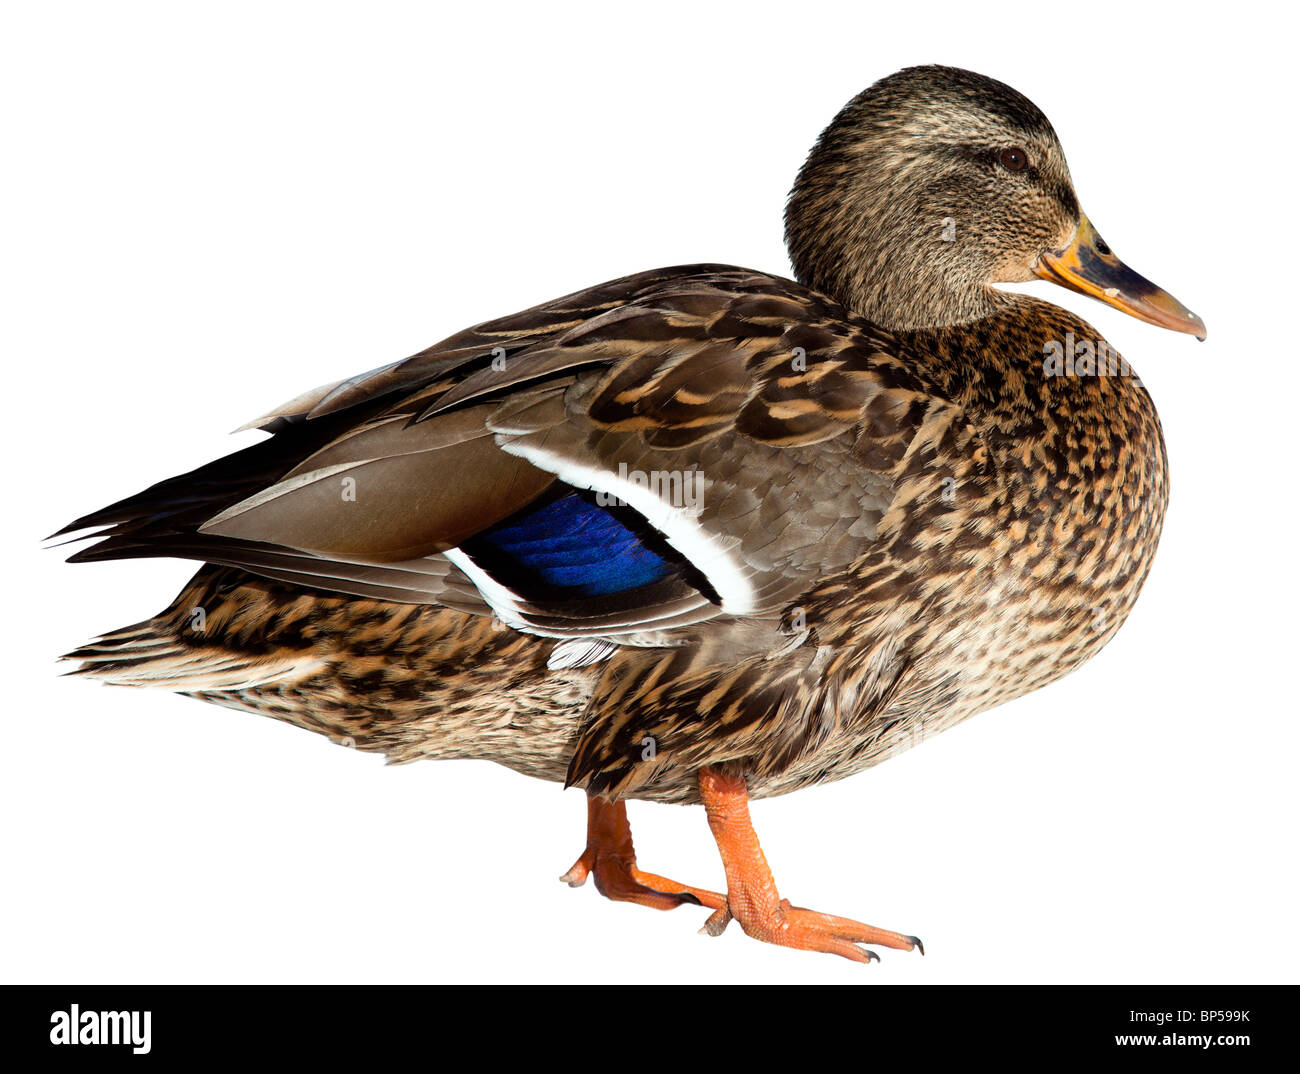 The Mallard (Anas platyrhynchos) in front of white background, isolated. - Stock Image